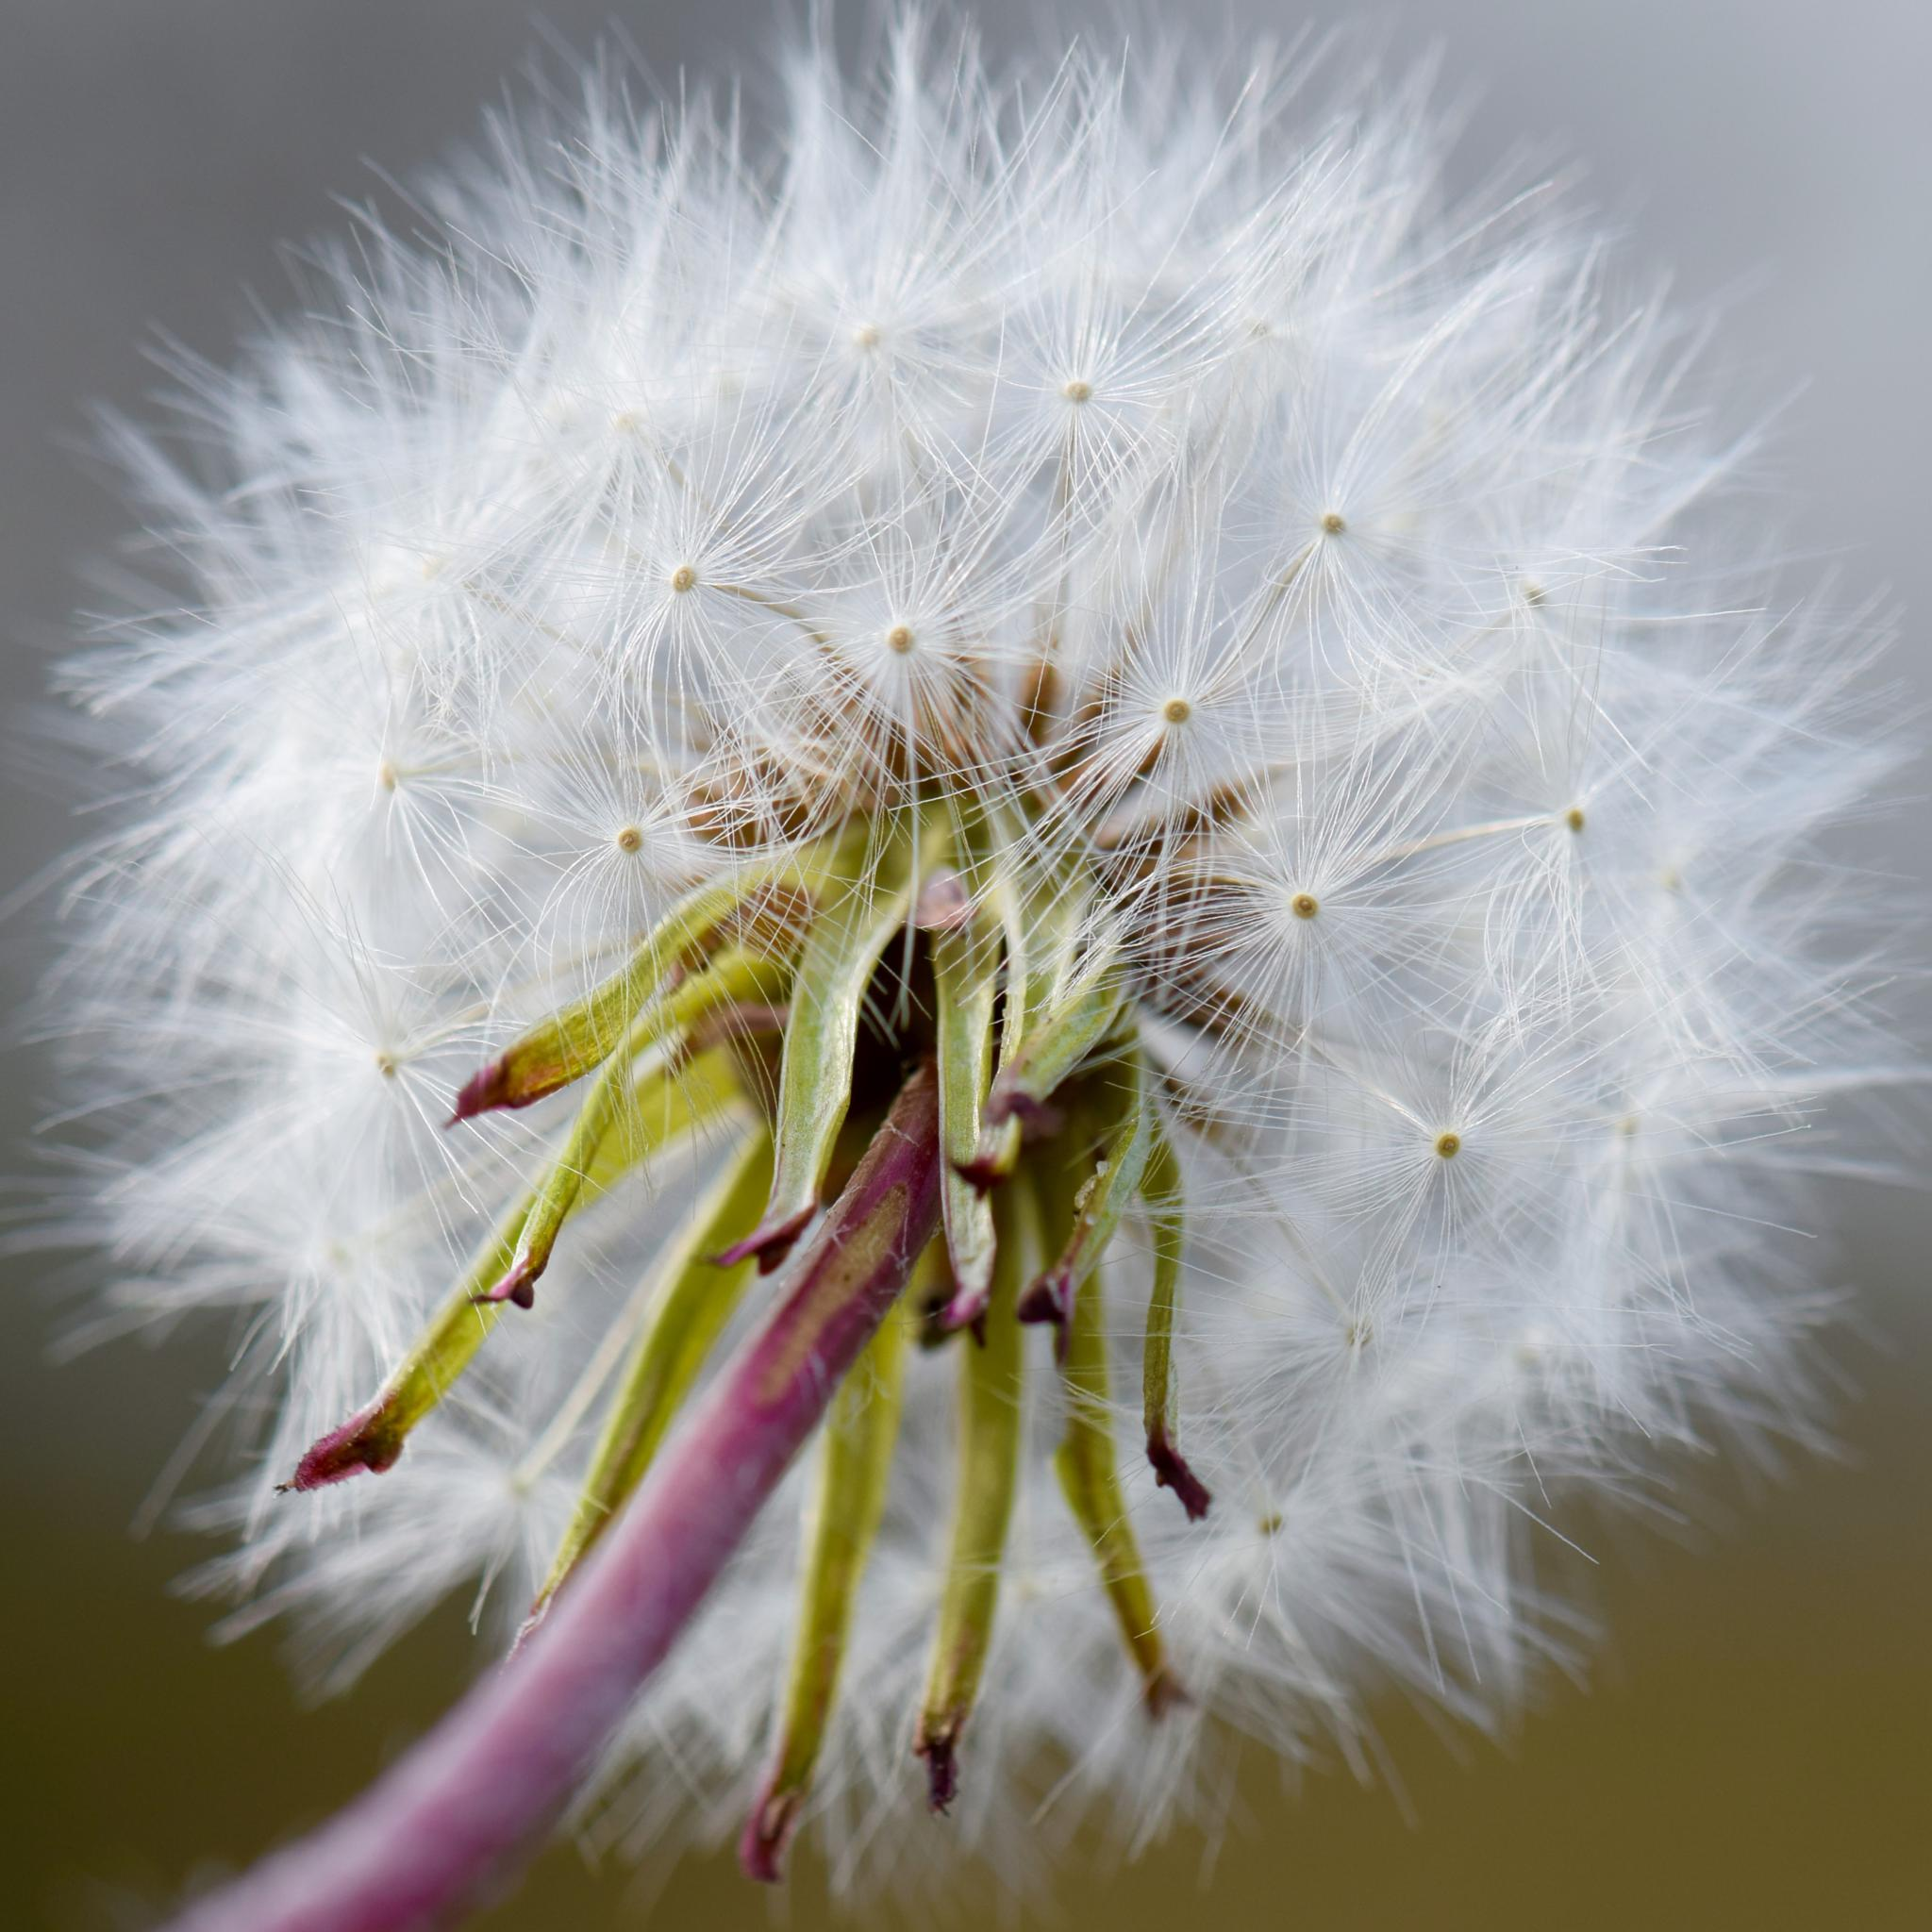 Dandelion flower seed head II. by Niels Dam